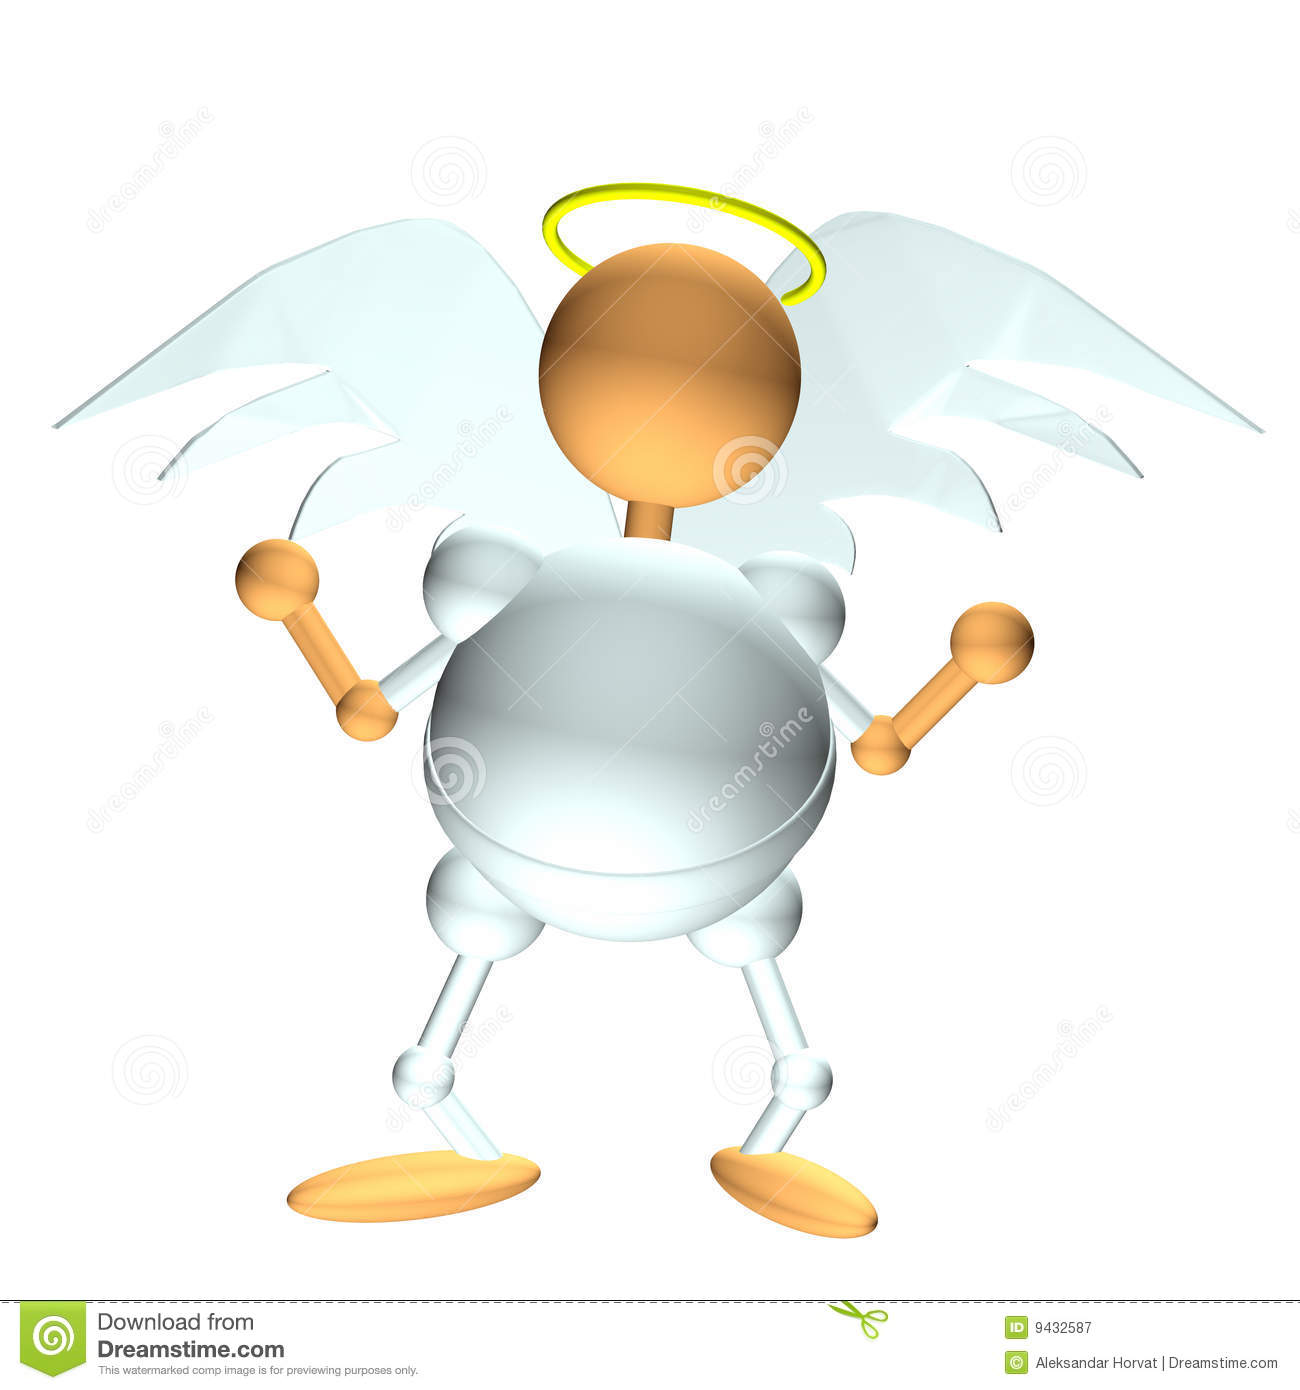 Angel Figurine Clipart Computer Generated 3d Icon Of Angel With Wings